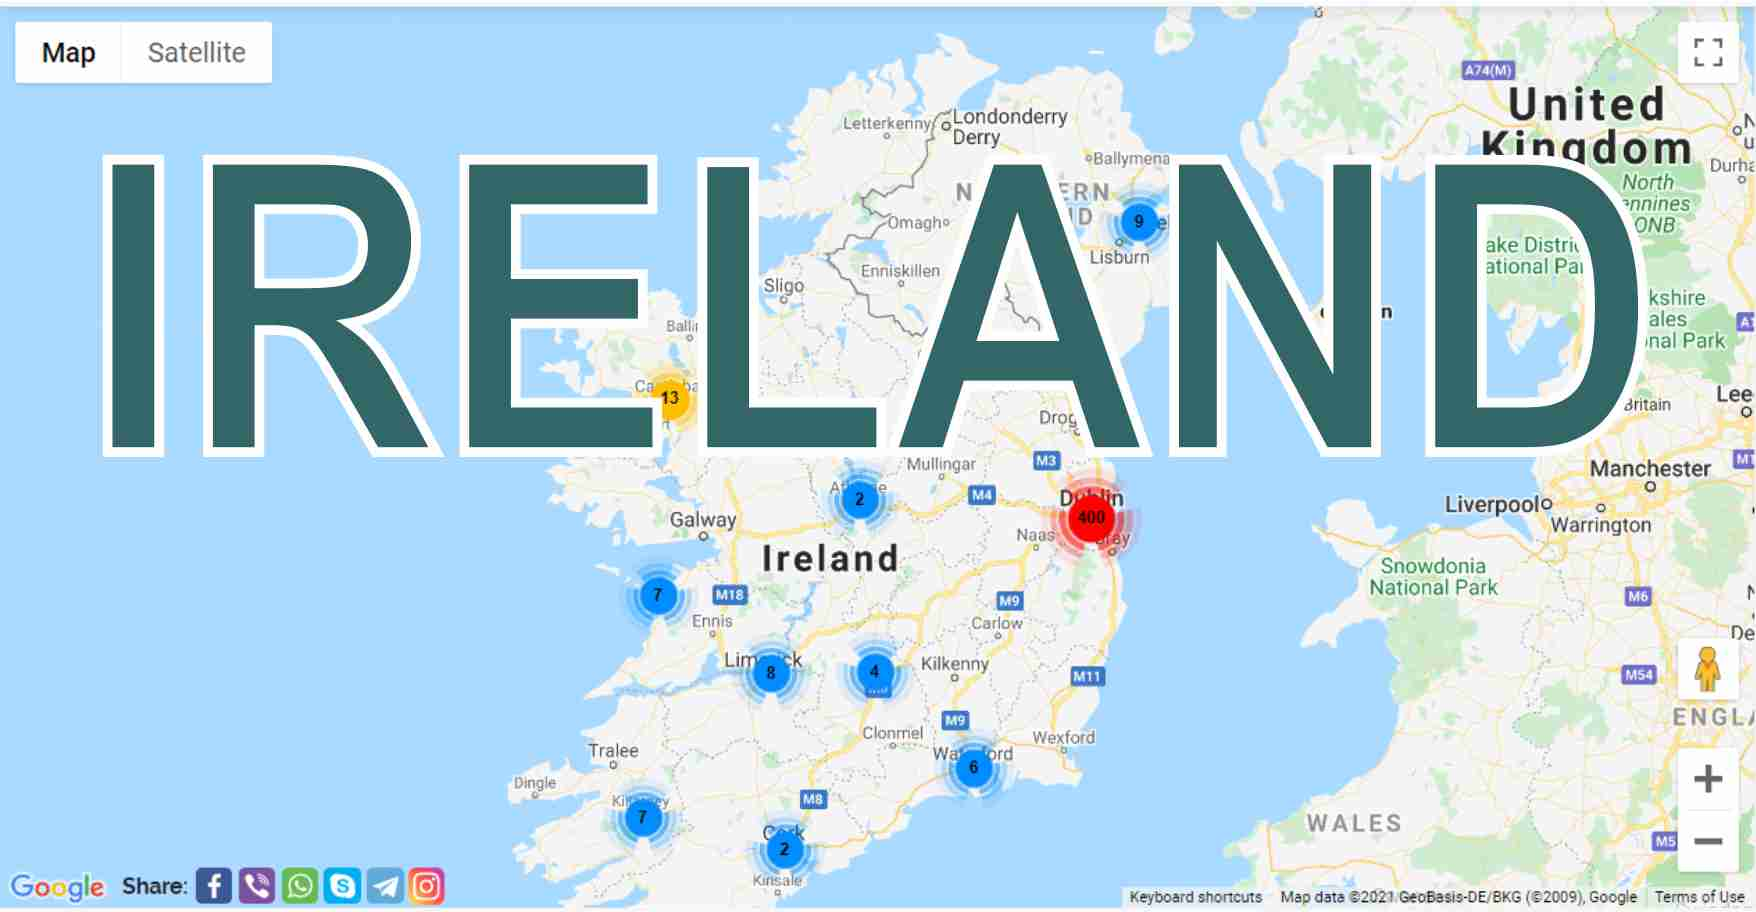 Ireland: what to see in different cities, what are they